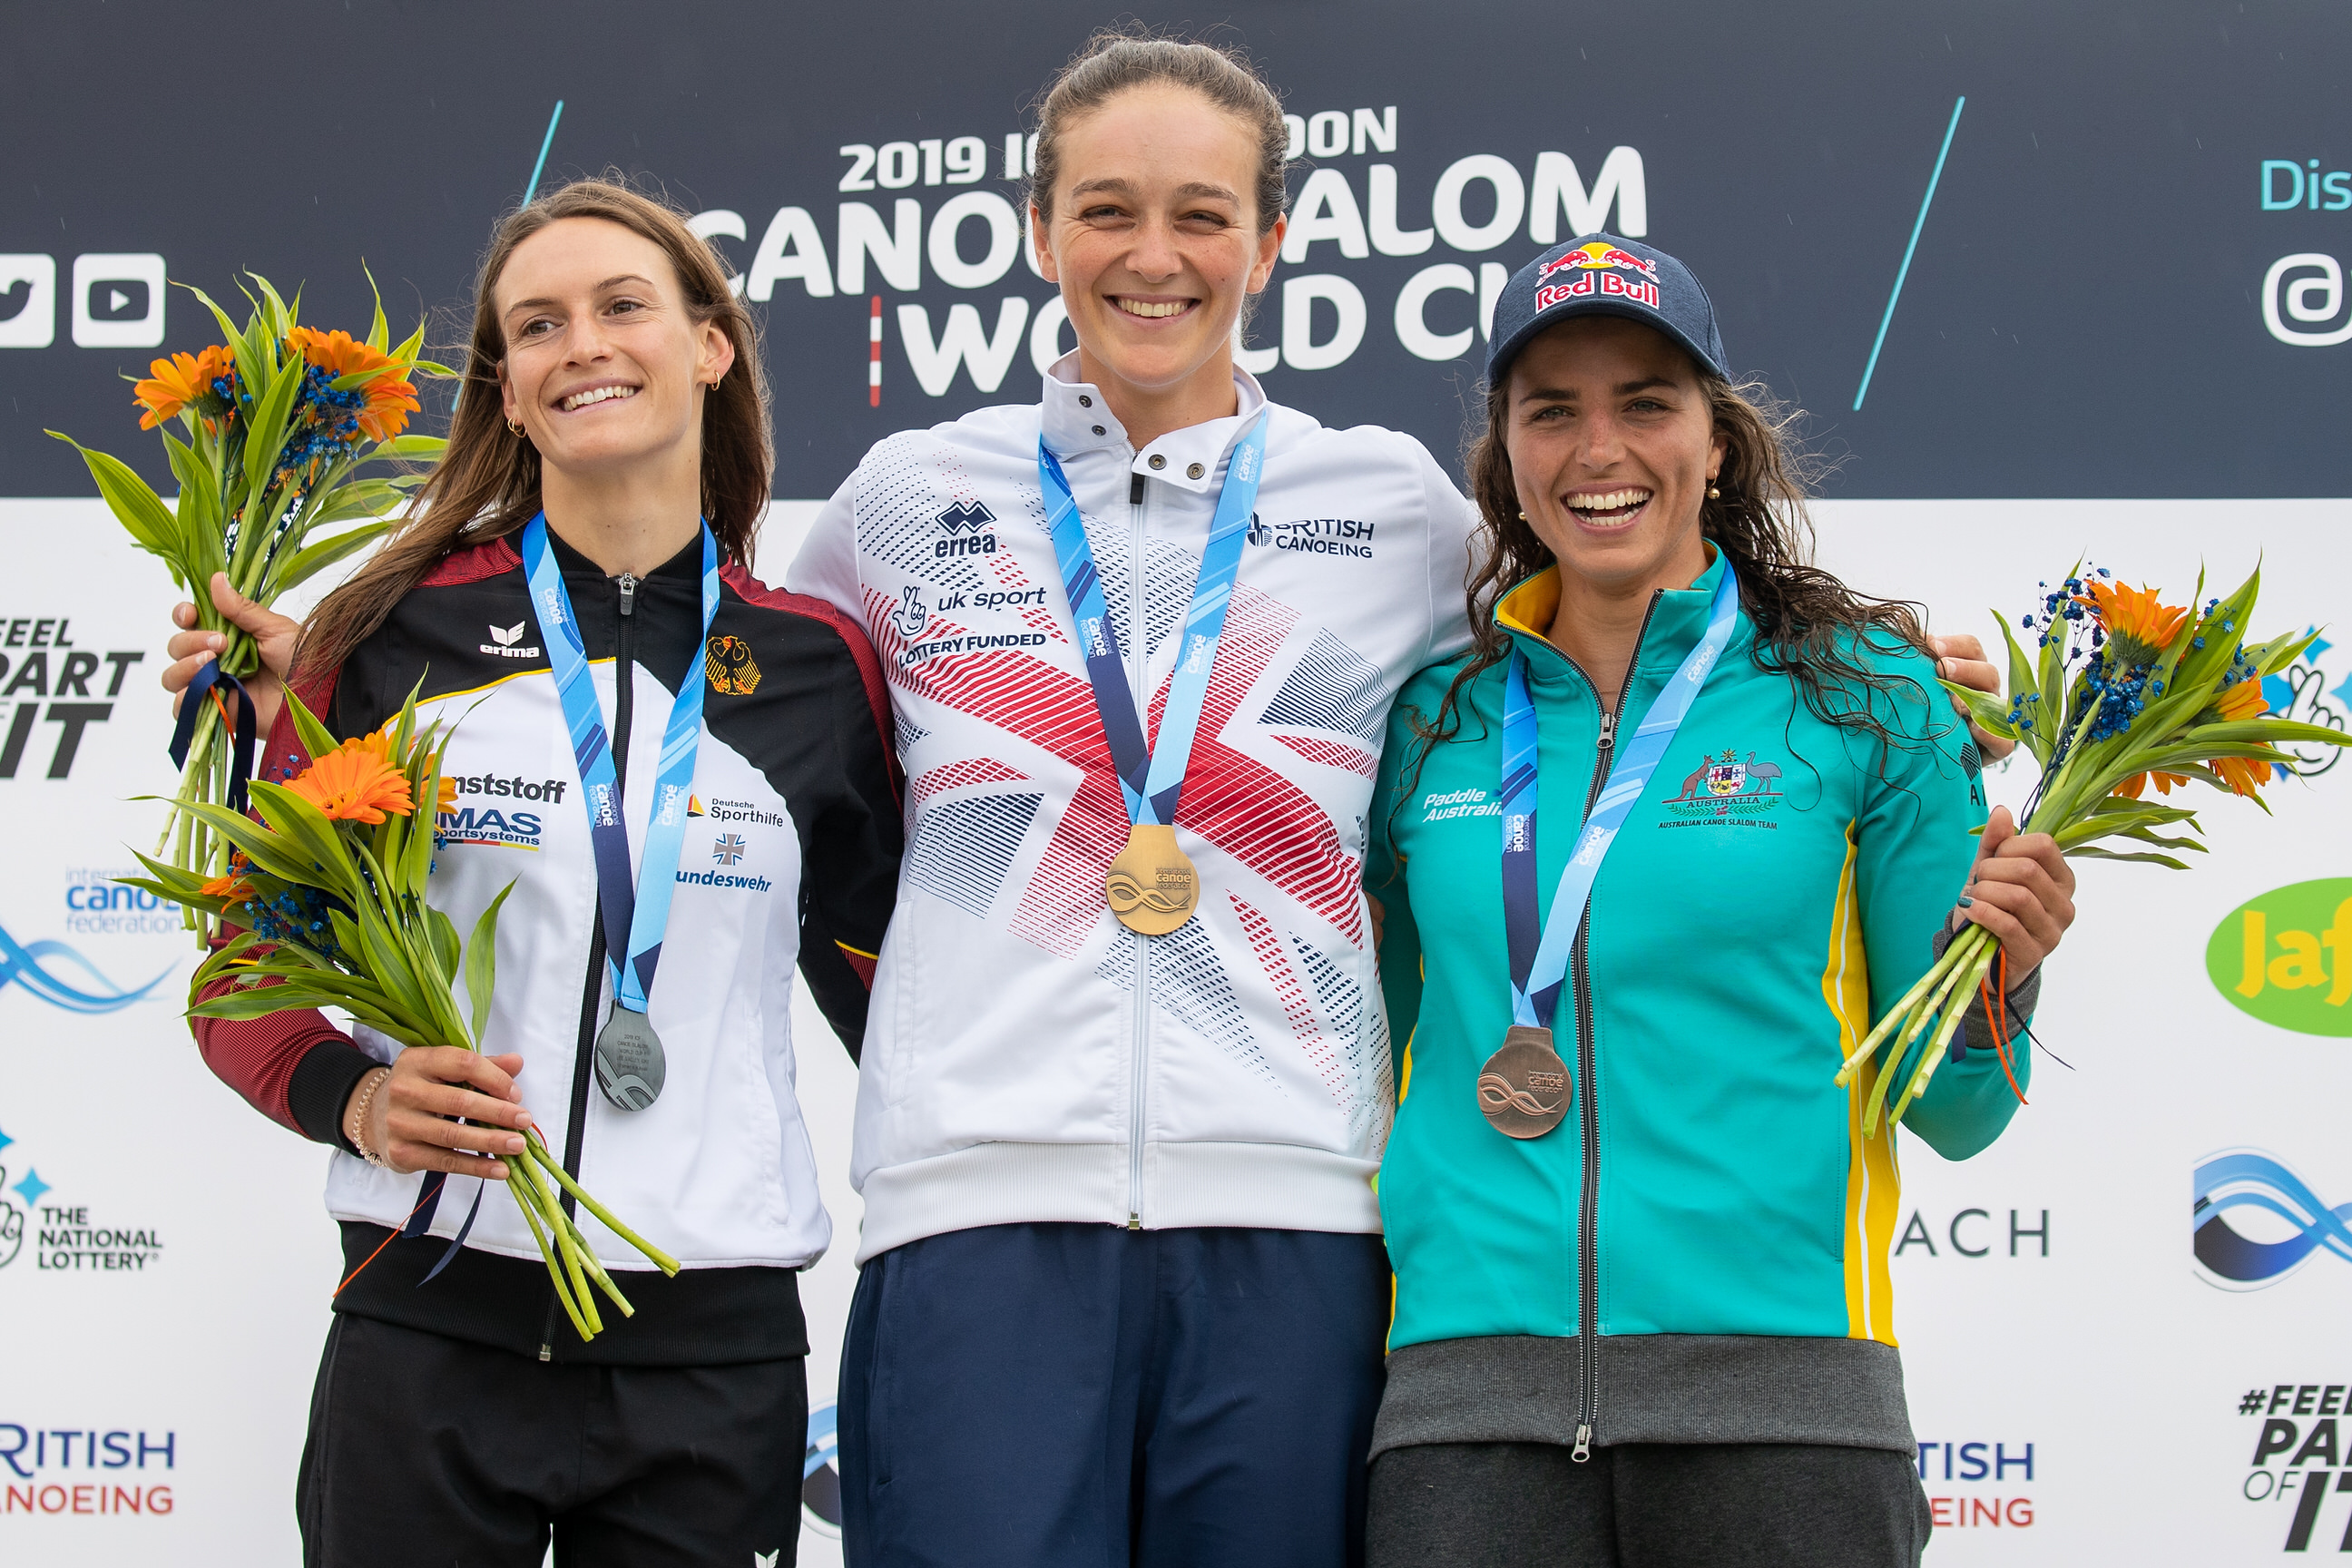 London Canoe Slalom World Cup